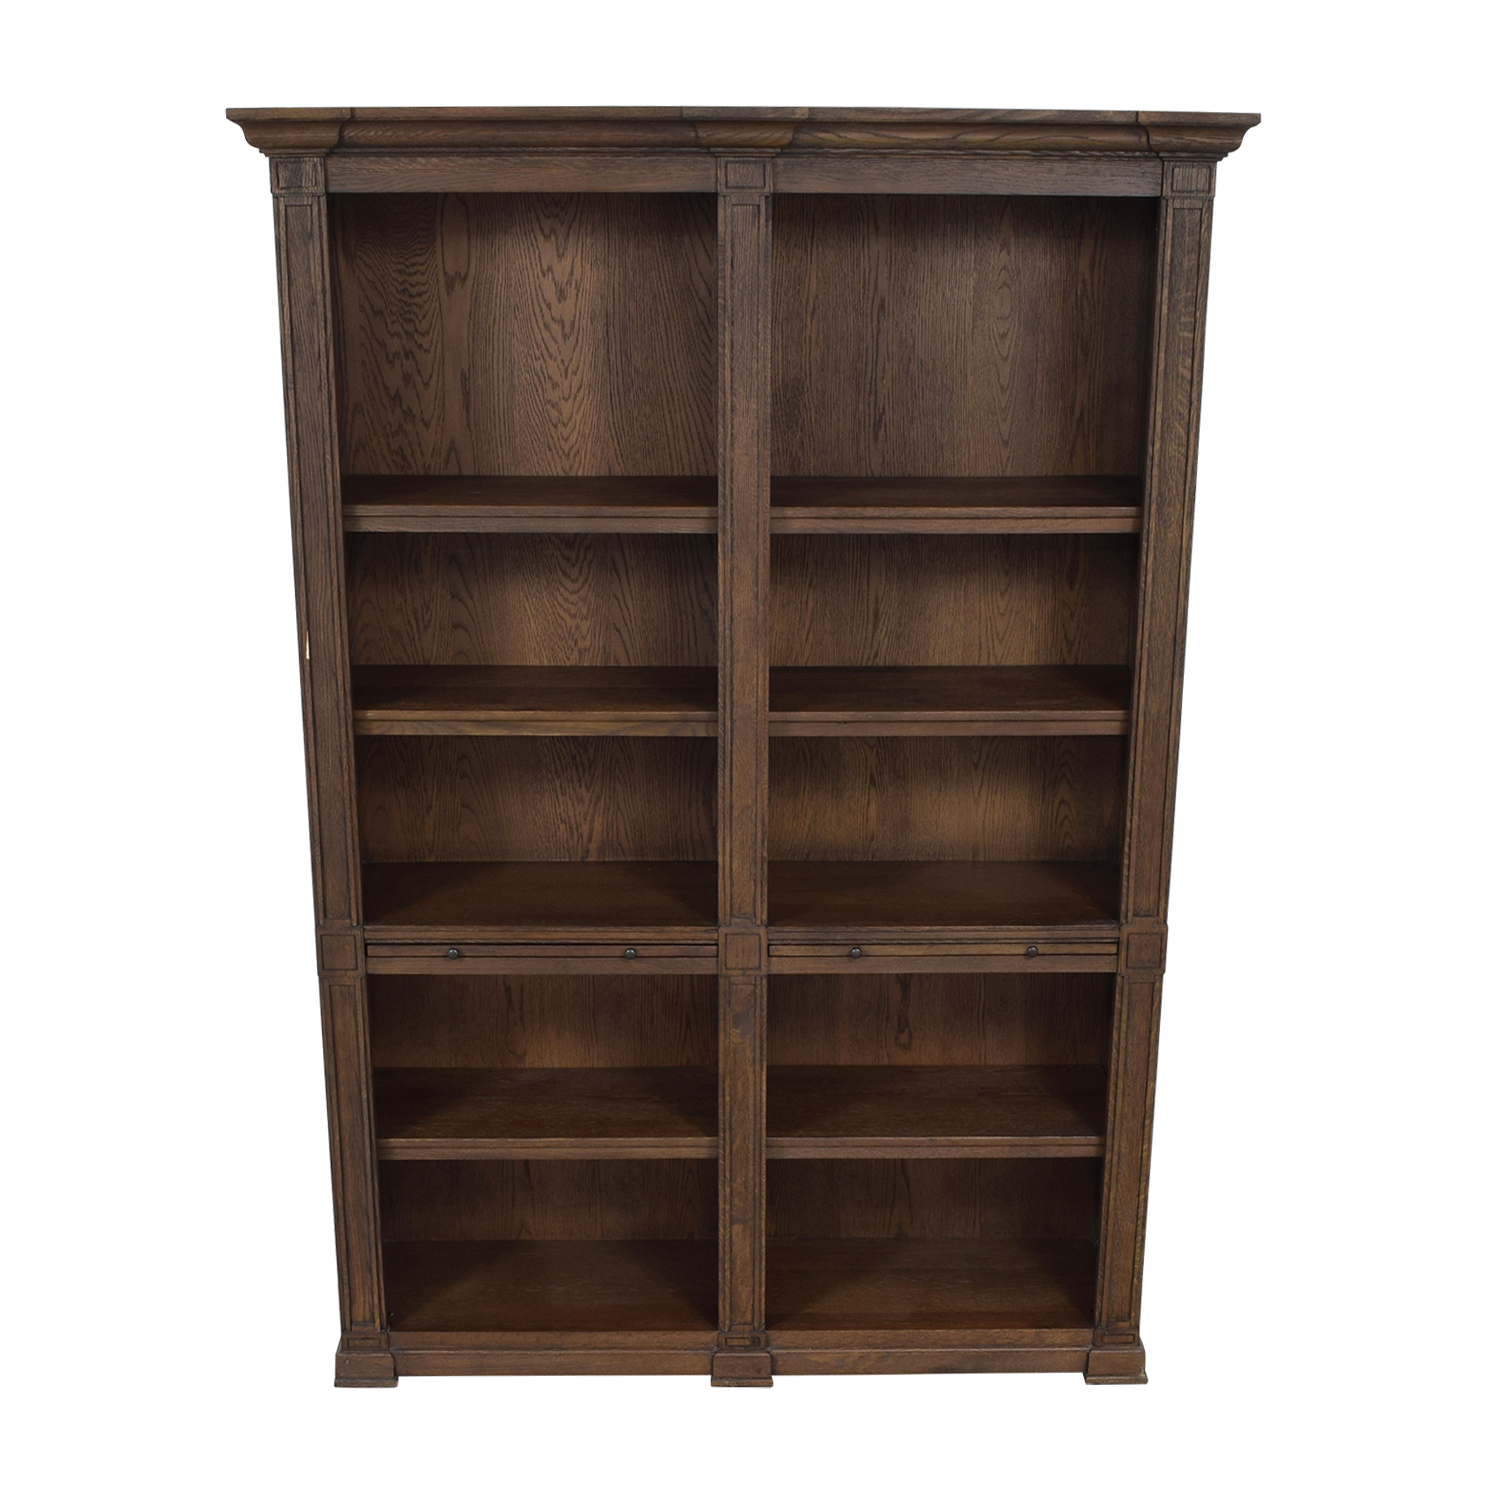 Restoration Hardware Restoration Hardware Wood Library Bookcase with Desk on sale